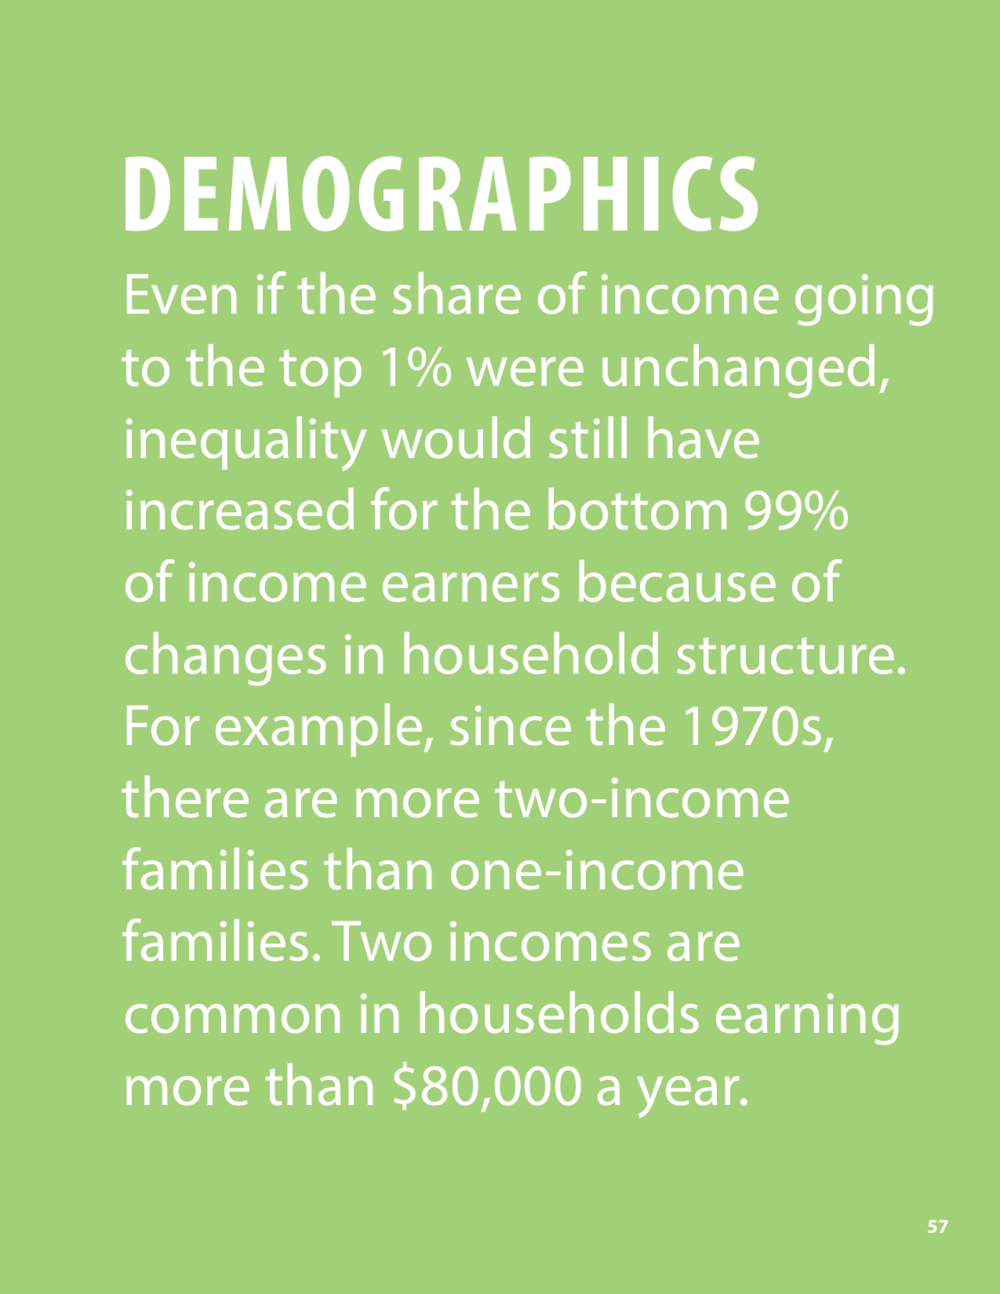 IncomeGuide_2013_Jan17_RGB_page 57_57.png